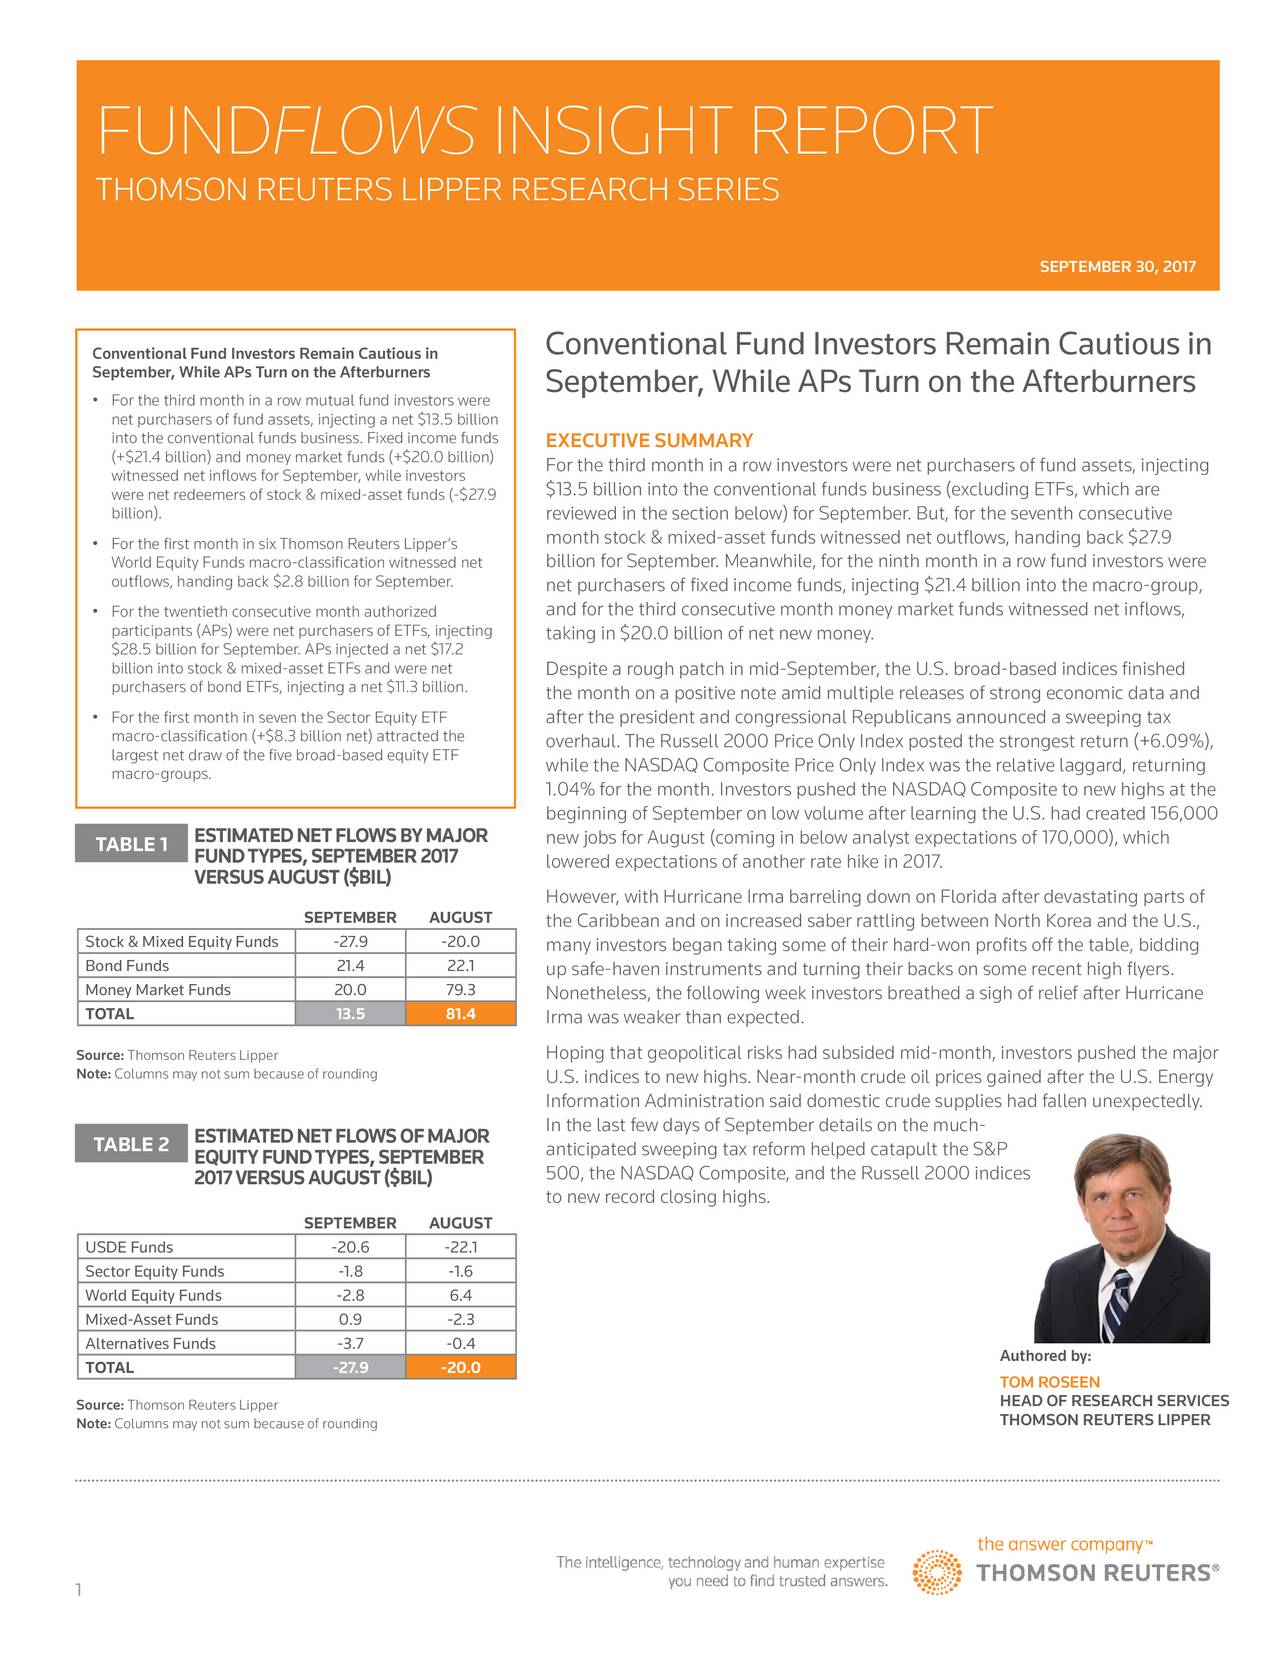 THOMSON REUTERS LIPPER RESEARCH SERIES SEPTEMBER 30, 2017 Conventional Fund Investors Remain Cautious in Conventional Fund Investors Remain Cautious in September, While APsTurn on the Afterburners September, While APsTurn on the Afterburners • For the third month in a row mutual fund investors were net purchasers of fund assets, injecting a net $13.5 billion into the conventional funds business. Fixed income fuEXECUTIVE SUMMARY (+$21.4 billion) and money market funds (+$20.0 billiFor the third month in a row investors were net purchasers of fund assets, injecting witnessed net inflows for September, while investors were net redeemers of stock & mixed-asset funds (-$27.93.5 billion into the conventional funds business (excluding ETFs, which are billion). reviewed in the section below) for September. But, for the seventh consecutive • For the first month in six Thomson Reuters Lipper's month stock & mixed-asset funds witnessed net outflows, handing back $27.9 billion for September. Meanwhile, for the ninth month in a row fund investors were World Equity Funds macro-classification witnessed net outflows, handing back $2.8 billion for September. net purchasers of fixed income funds, injecting $21.4 billion into the macro-group, • For the twentieth consecutive month authorized and for the third consecutive month money market funds witnessed net inflows, participants (APs) were net purchasers of ETFs, injectaking in $20.0 billion of net new money. $28.5 billion for September. APs injected a net $17.2 billion into stock & mixed-asset ETFs and were net Despite a rough patch in mid-September, the U.S. broad-based indices finished purchasers of bond ETFs, injecting a net $11.3 billion. the month on a positive note amid multiple releases of strong economic data and • For the first month in seven the Sector Equity ETF after the president and congressional Republicans announced a sweeping tax macro-classification (+$8.3 billion net) attracted thoverhaul. The Russell 2000 Price O